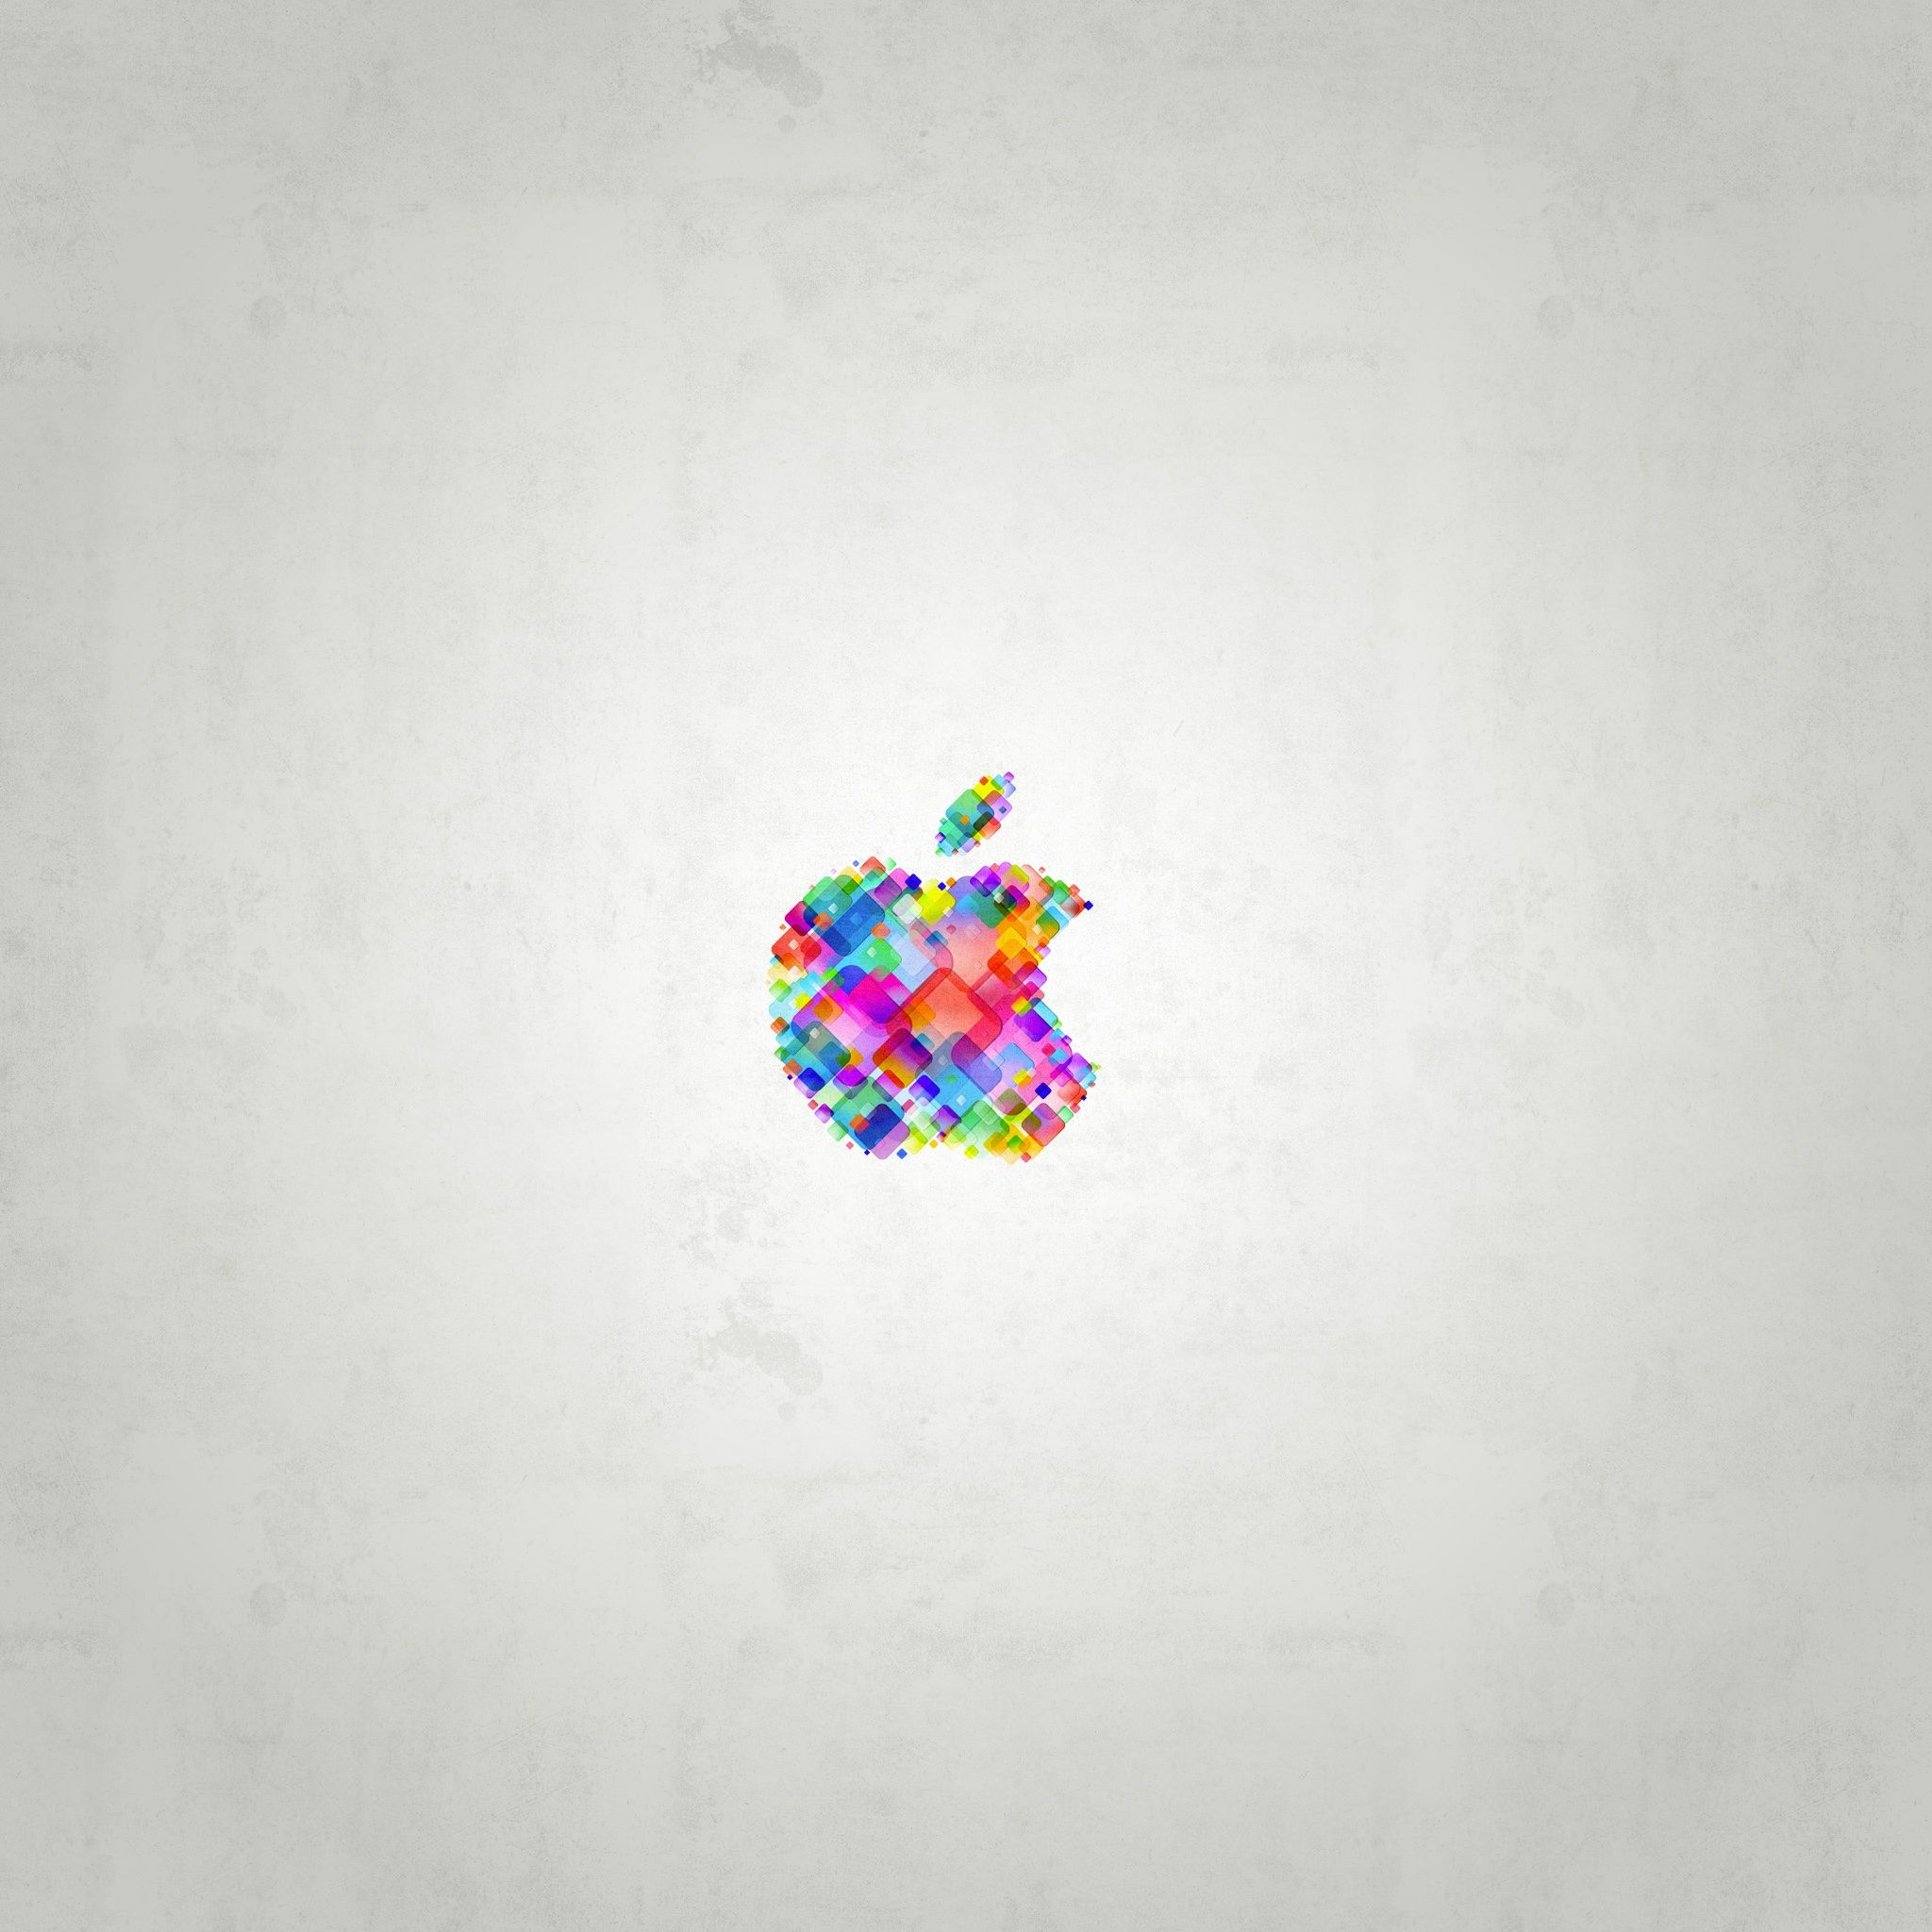 apple-retina-wallpaper